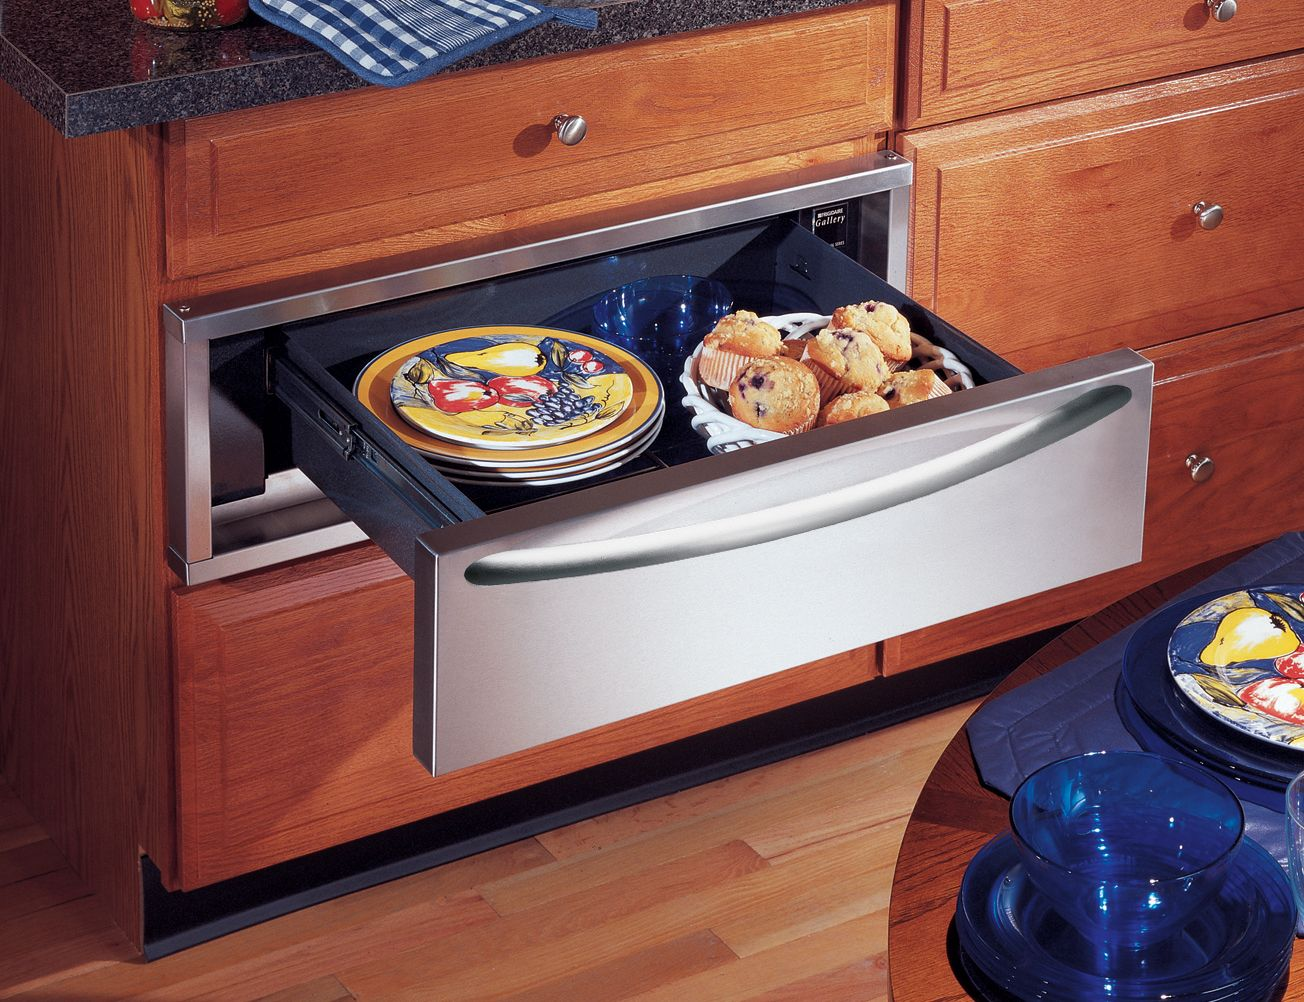 Frigidaire Professional Series 30 in. Warming Drawer